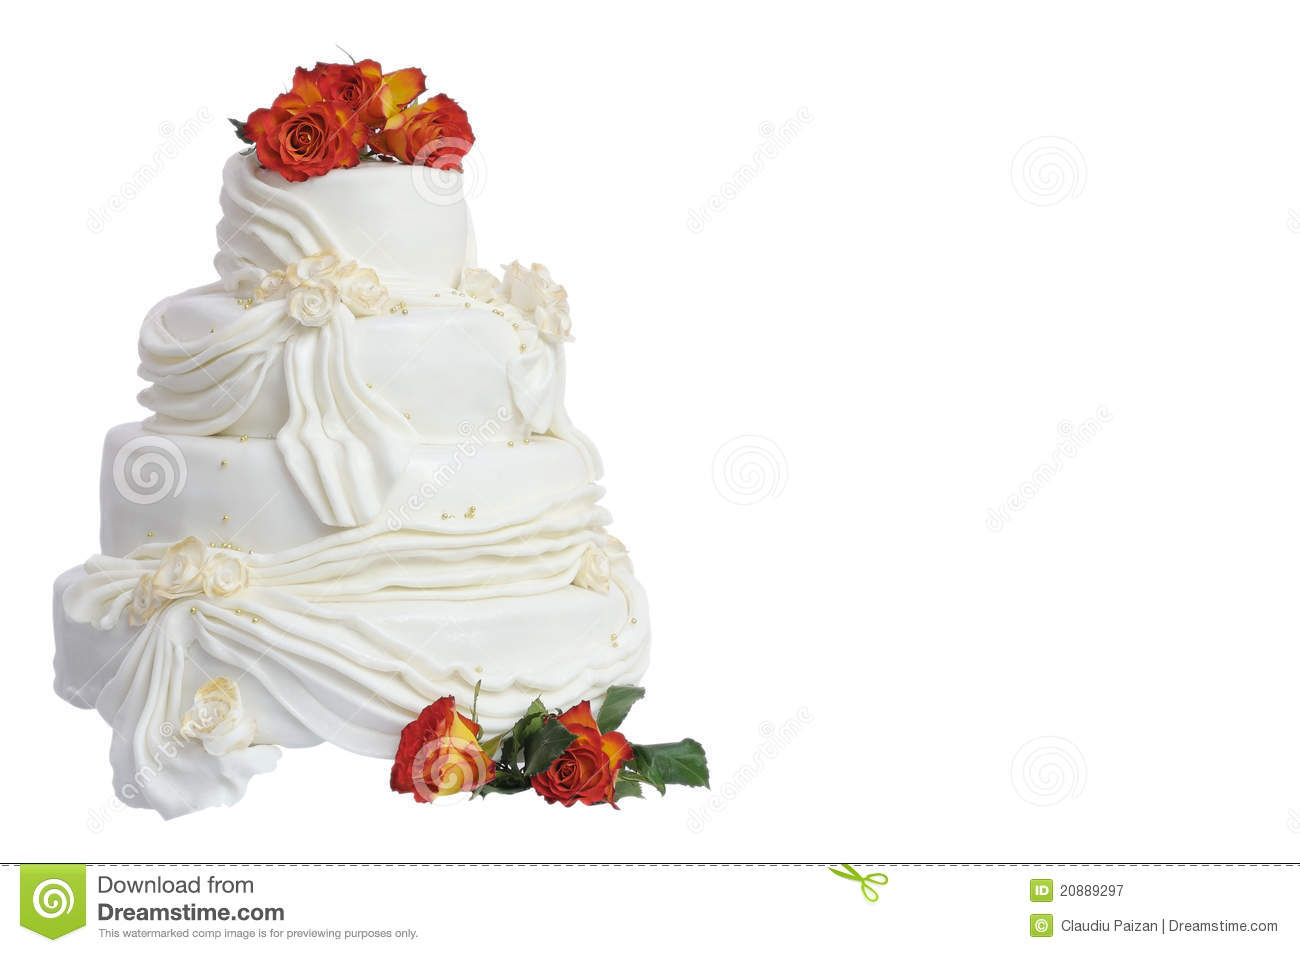 Marzipan Wedding Cake Royalty Free Stock Photography Image 20889297